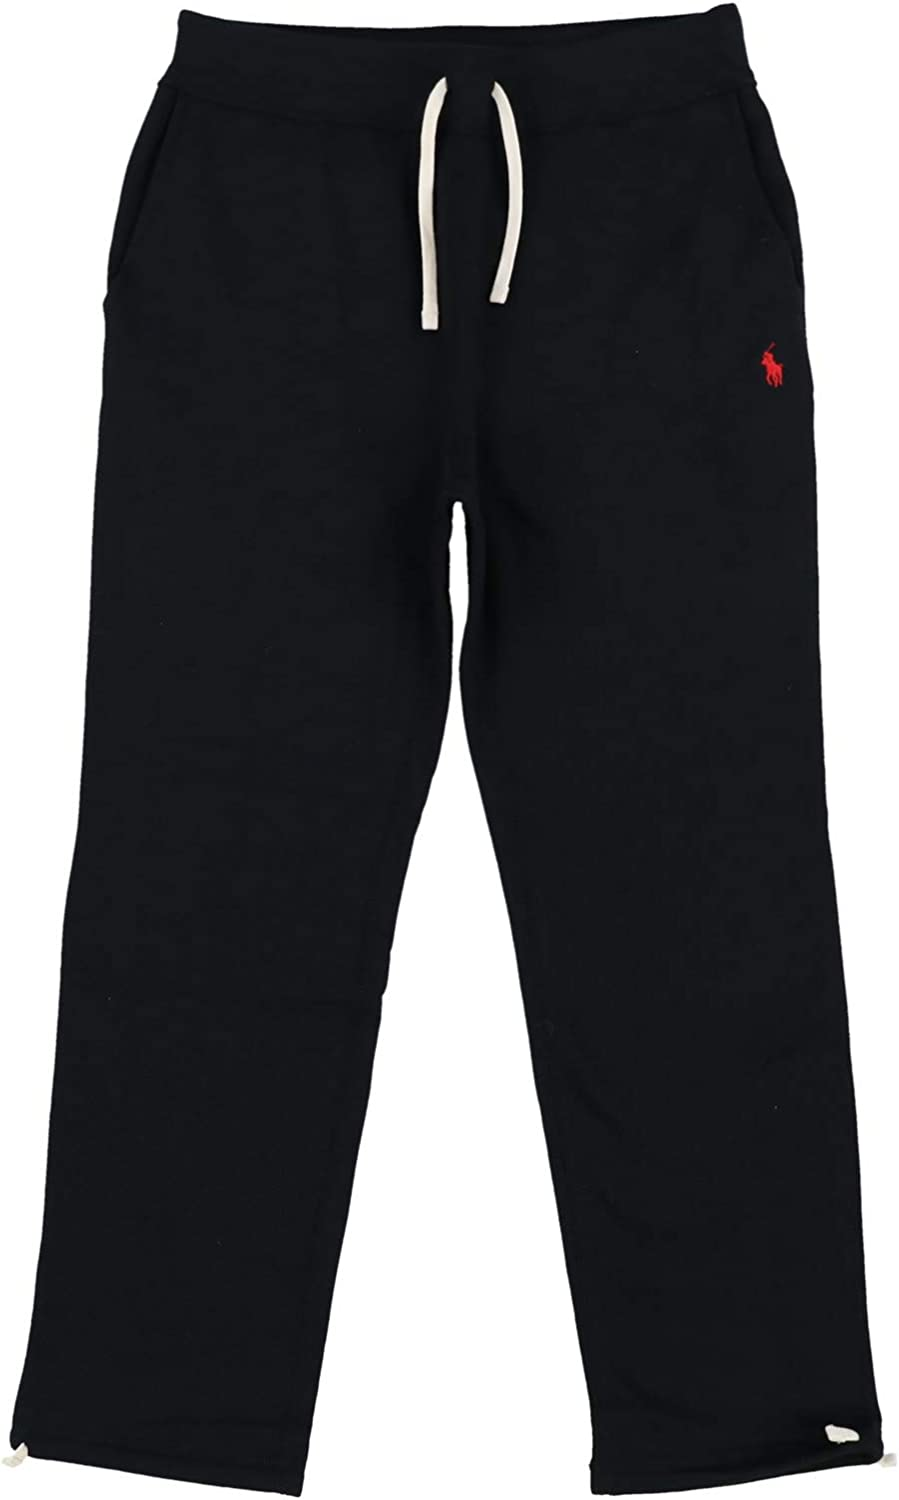 Polo Ralph Lauren Mens Fleece Lined Sweatpants